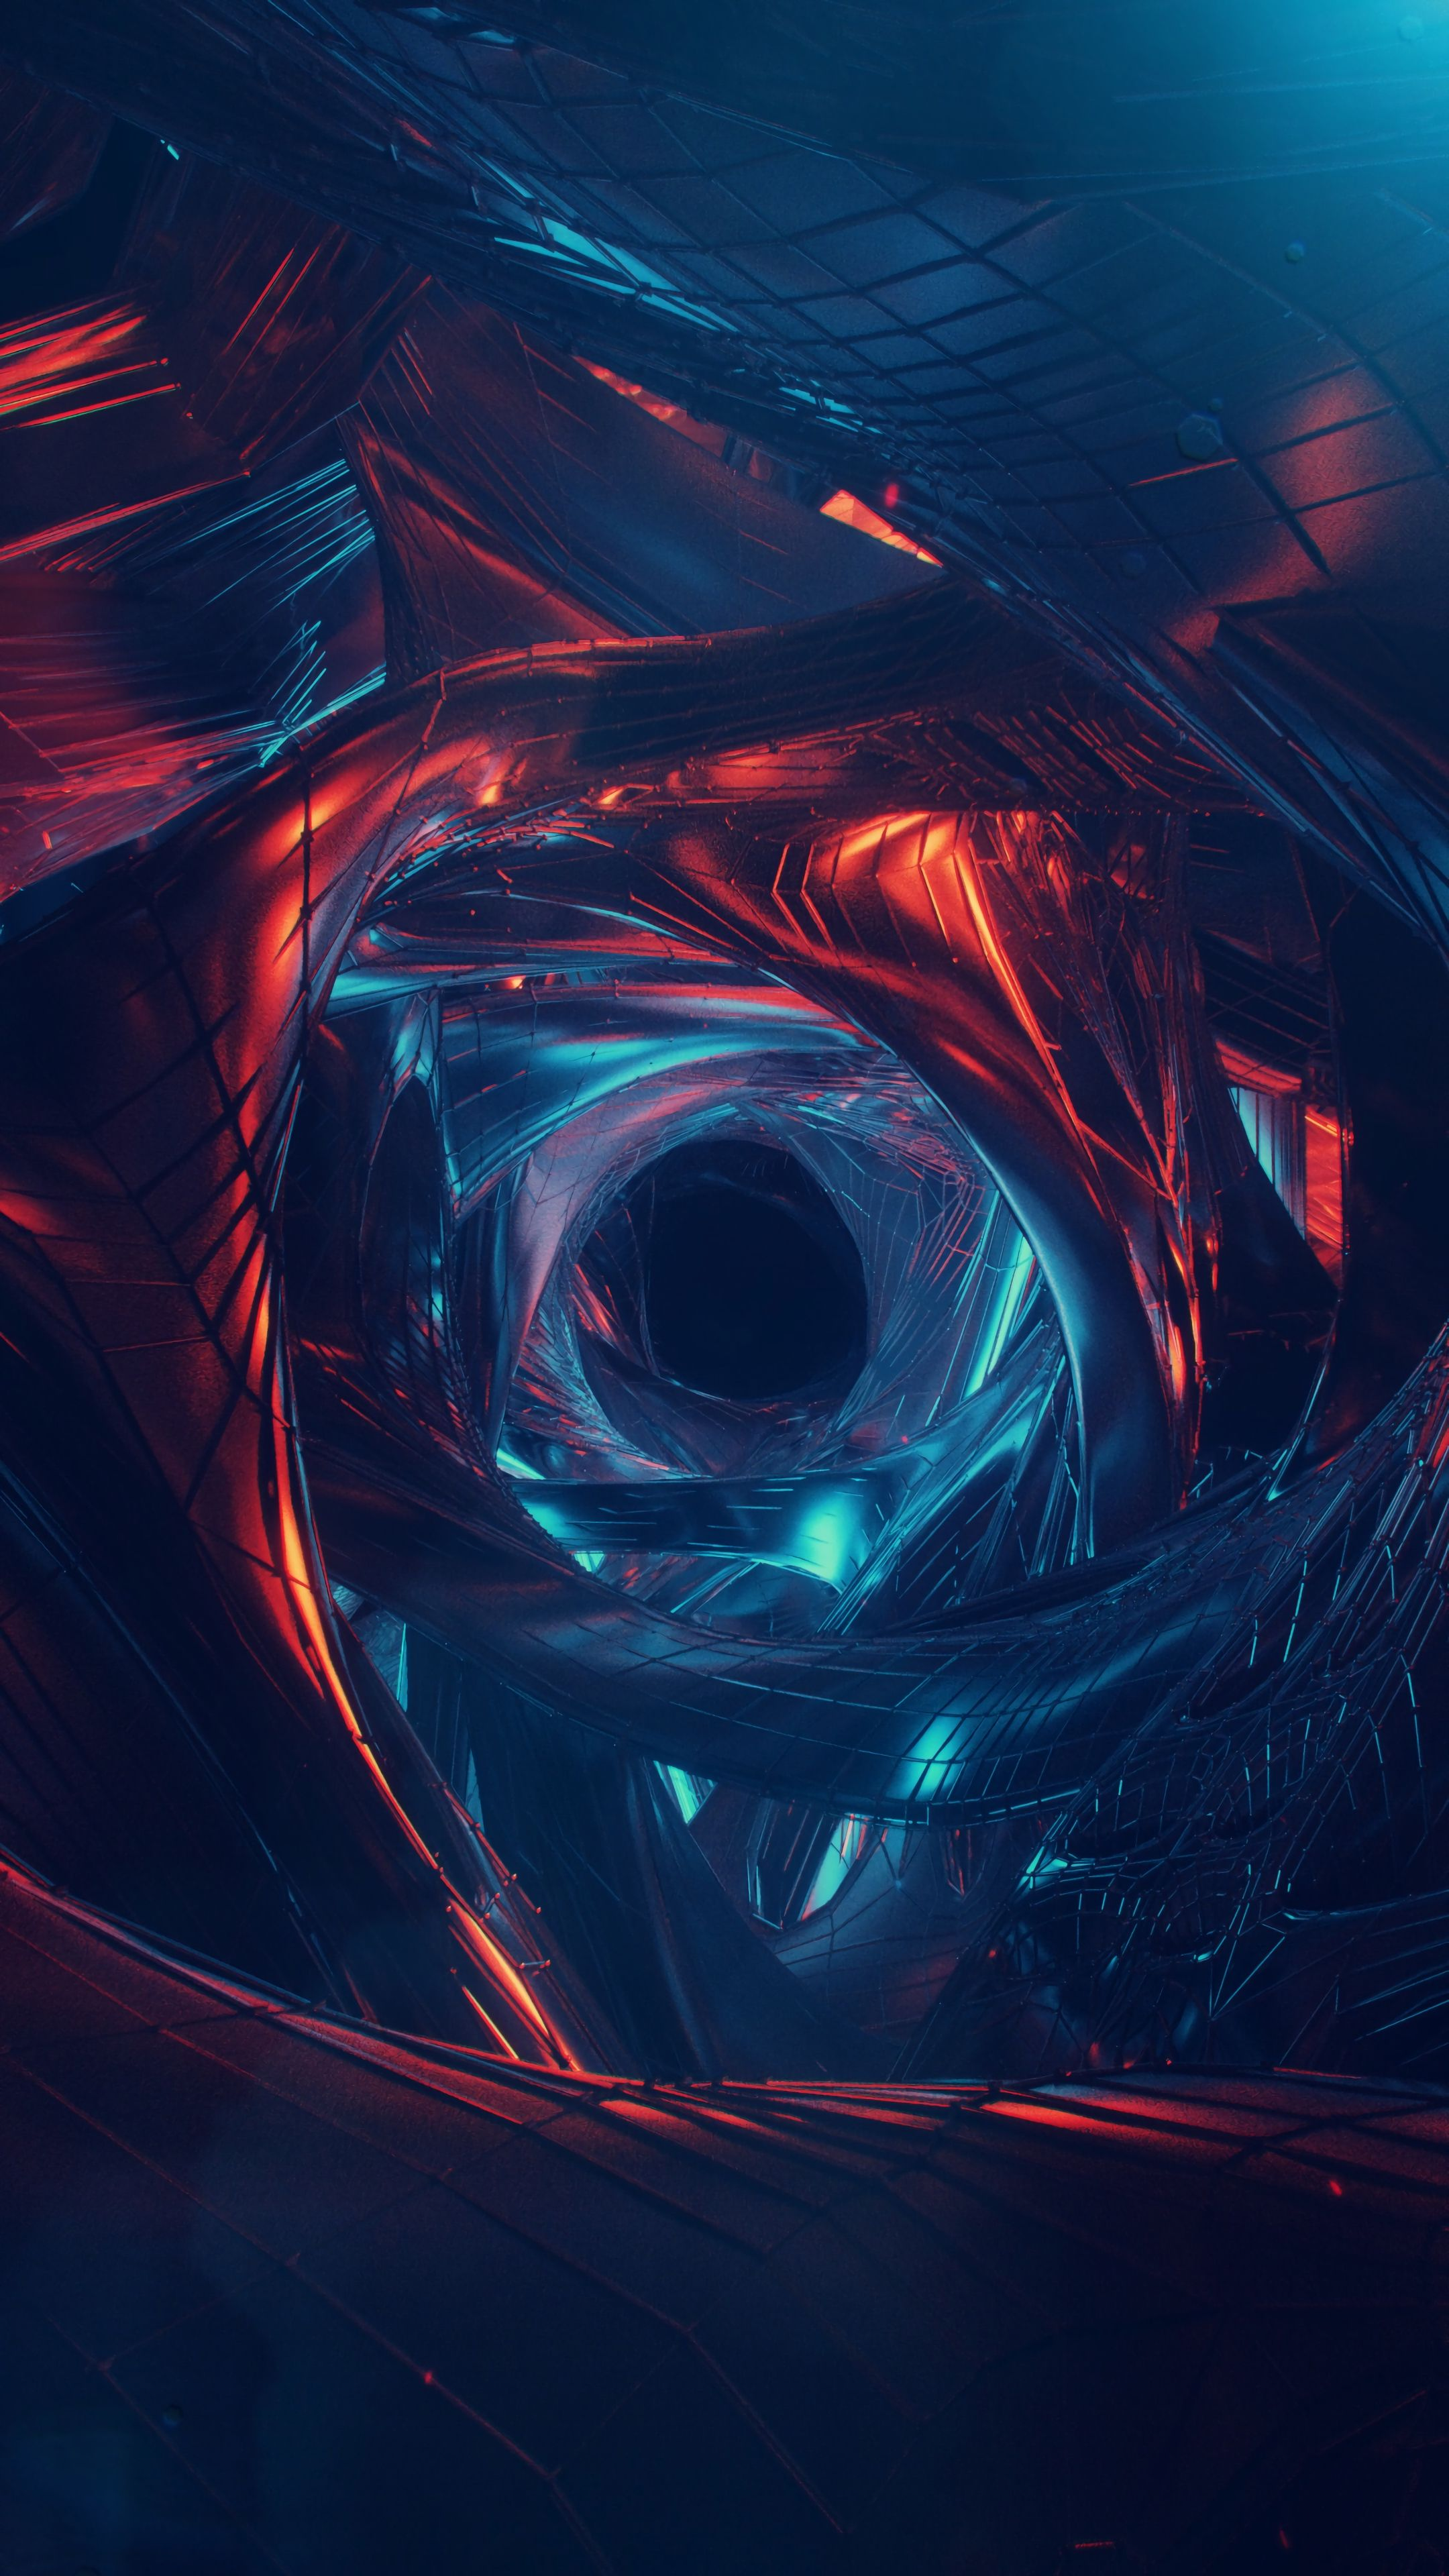 Abstract Wormhole Art Visualization Wallpapers Hd 4k Background For Android Android Wallpaper Abstract Abstract Wallpaper Backgrounds Infinity Wallpaper